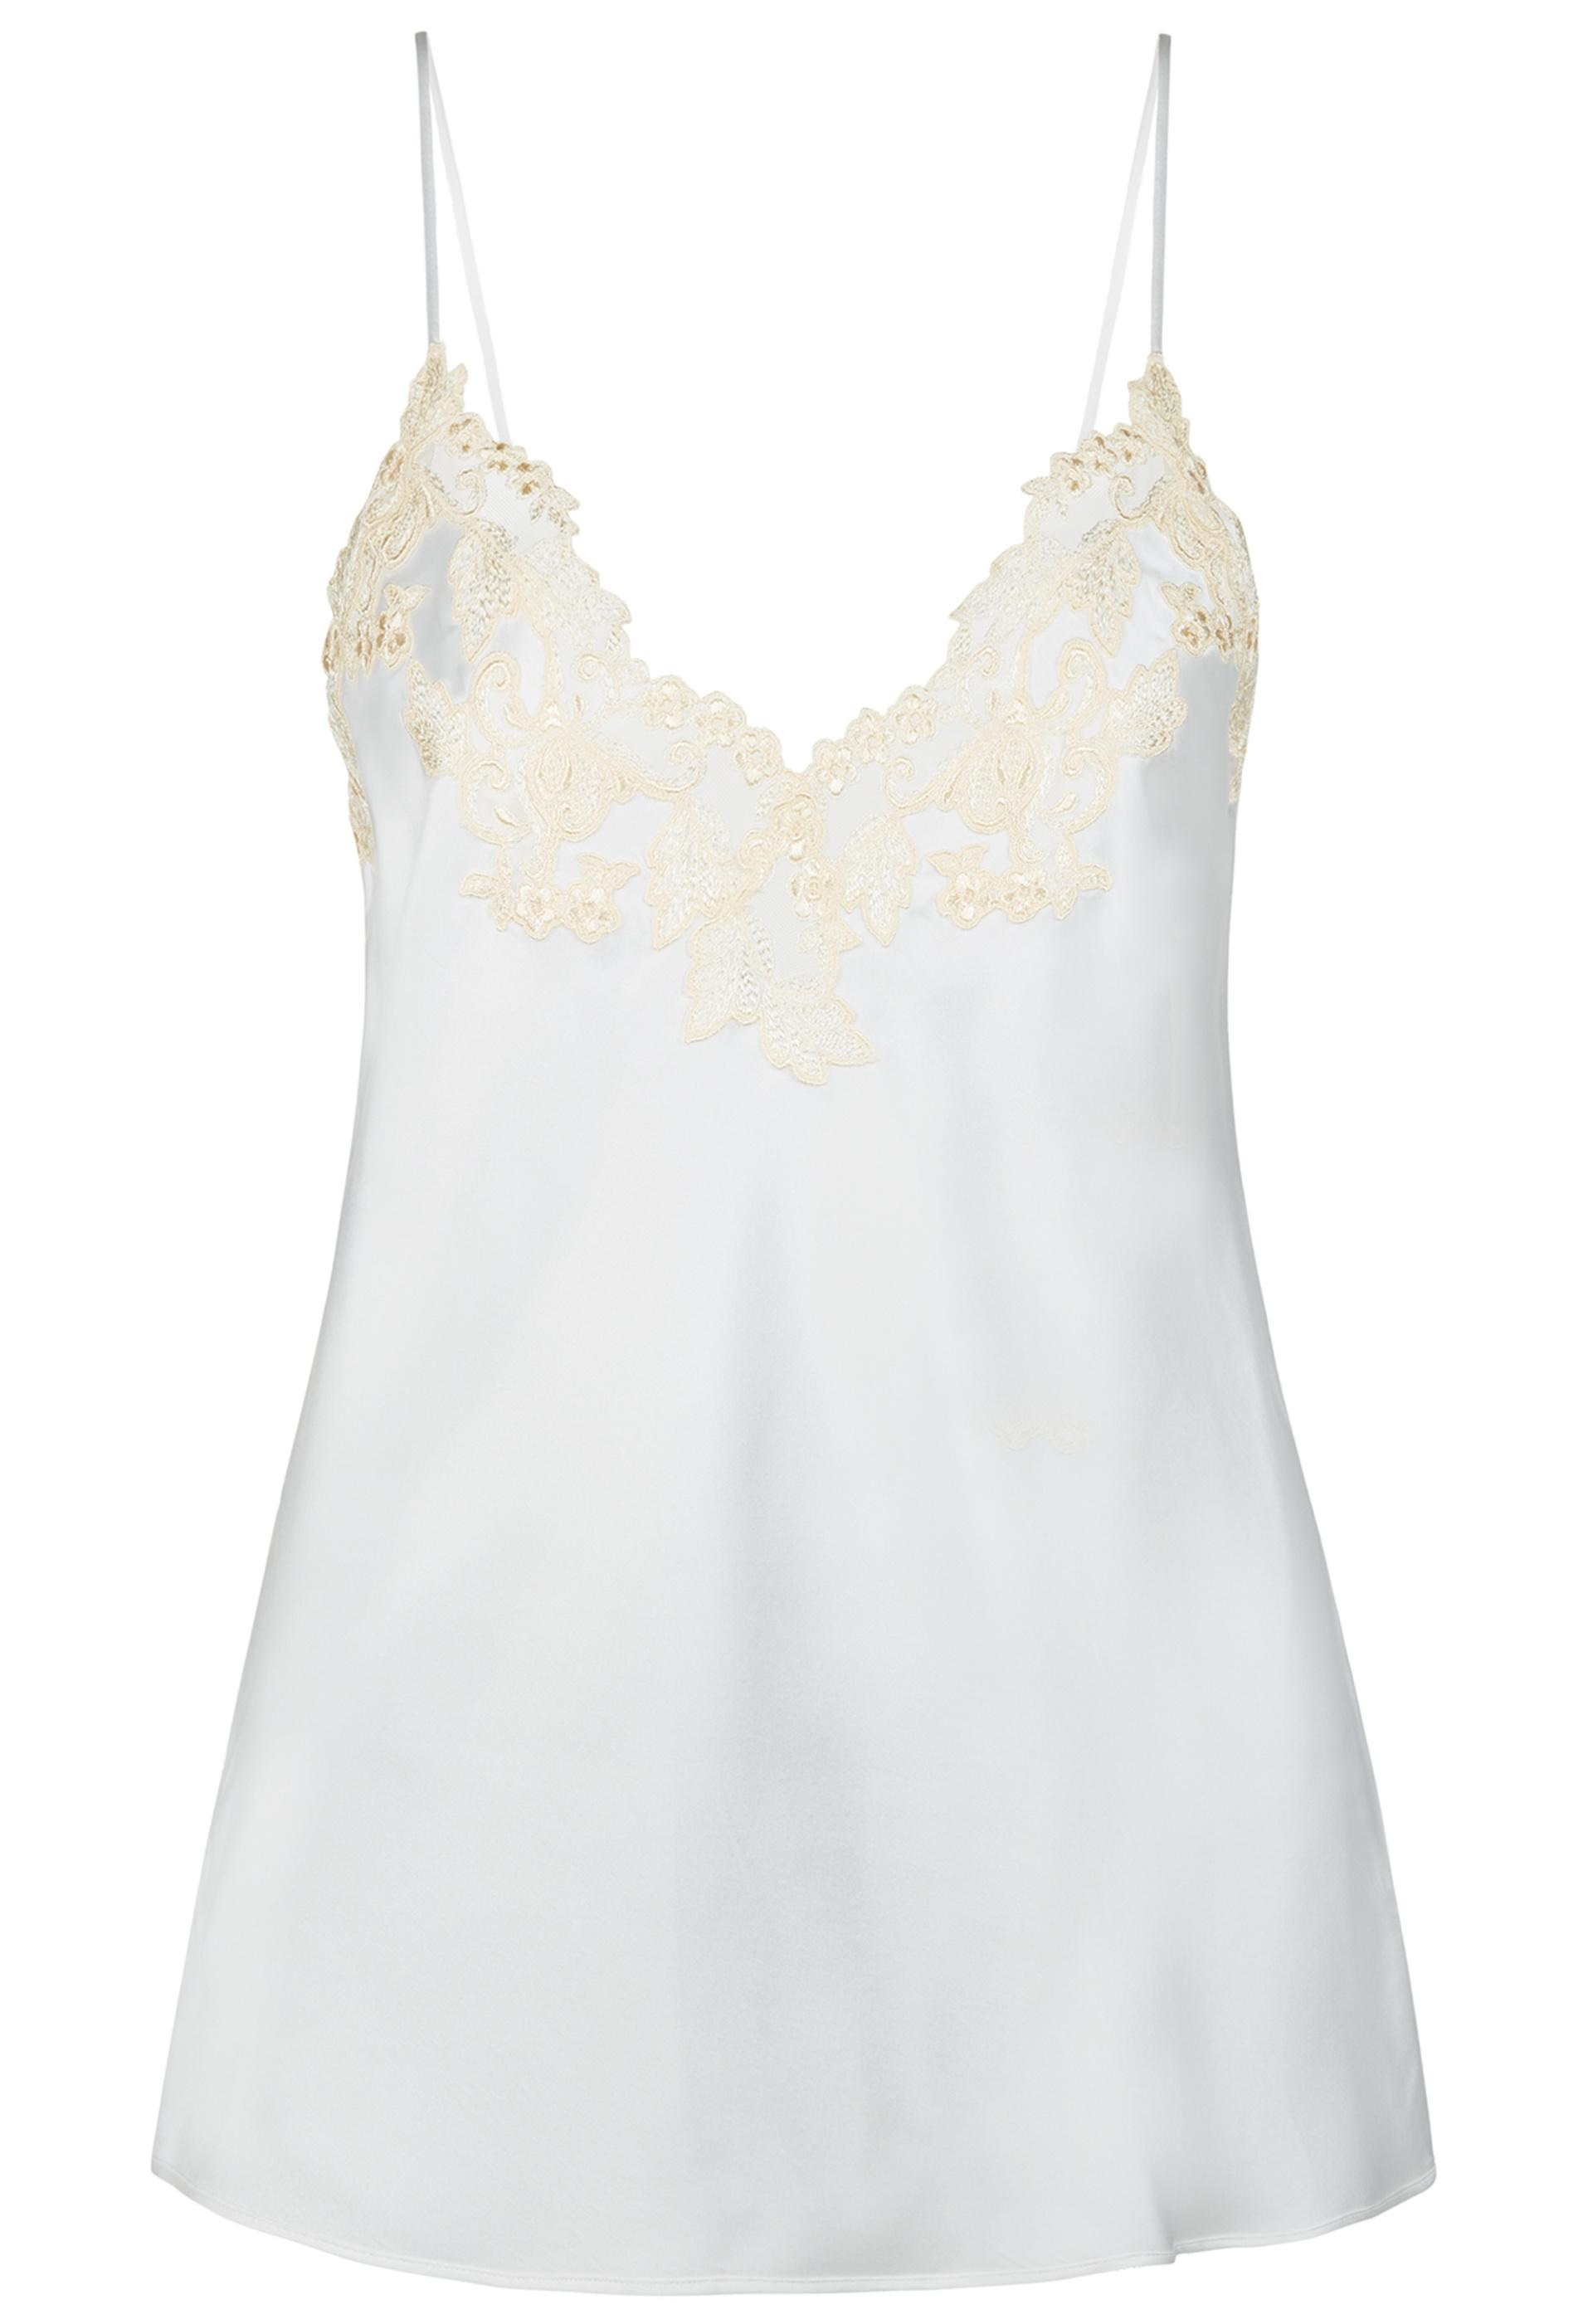 d51079e07b1cf Lyst - La Perla Maison Top in White